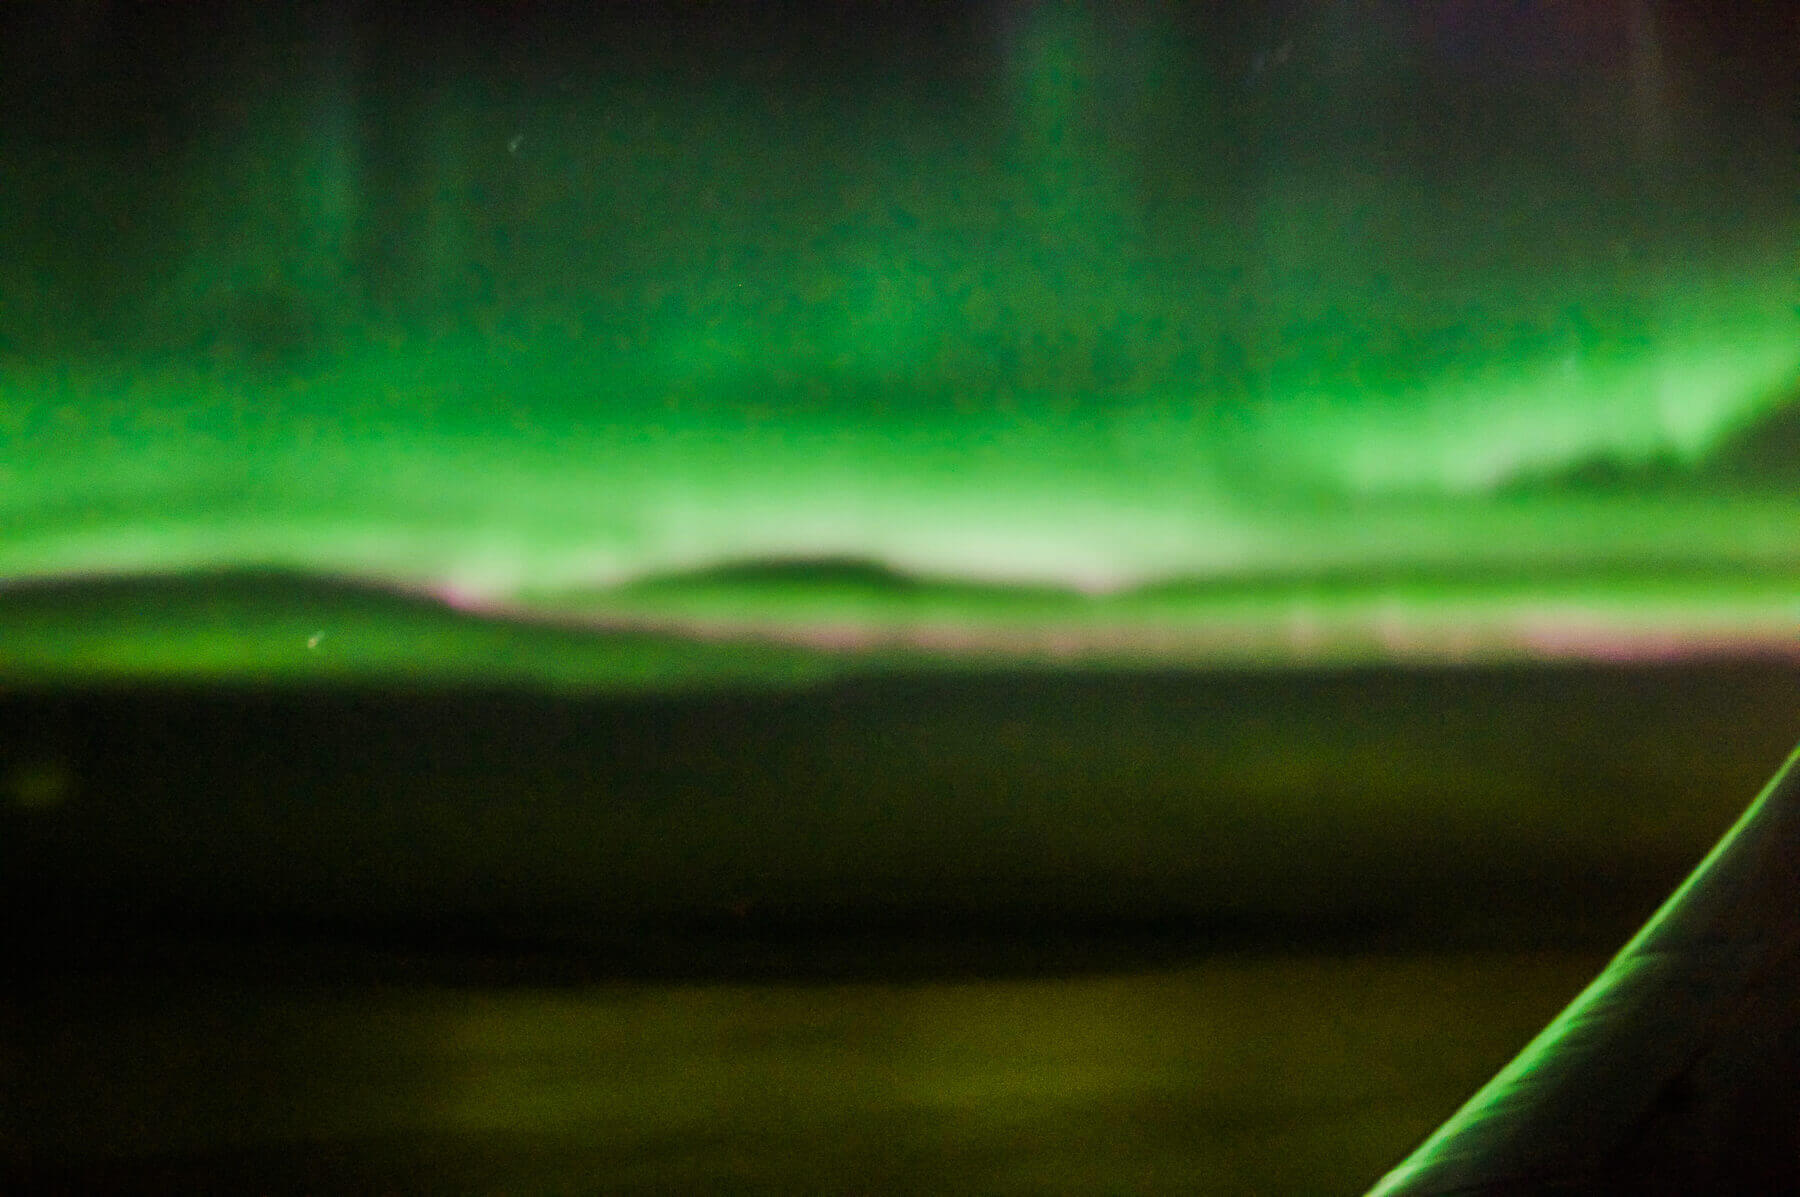 An unfocused image of the Northern Lights over an aeroplane wing